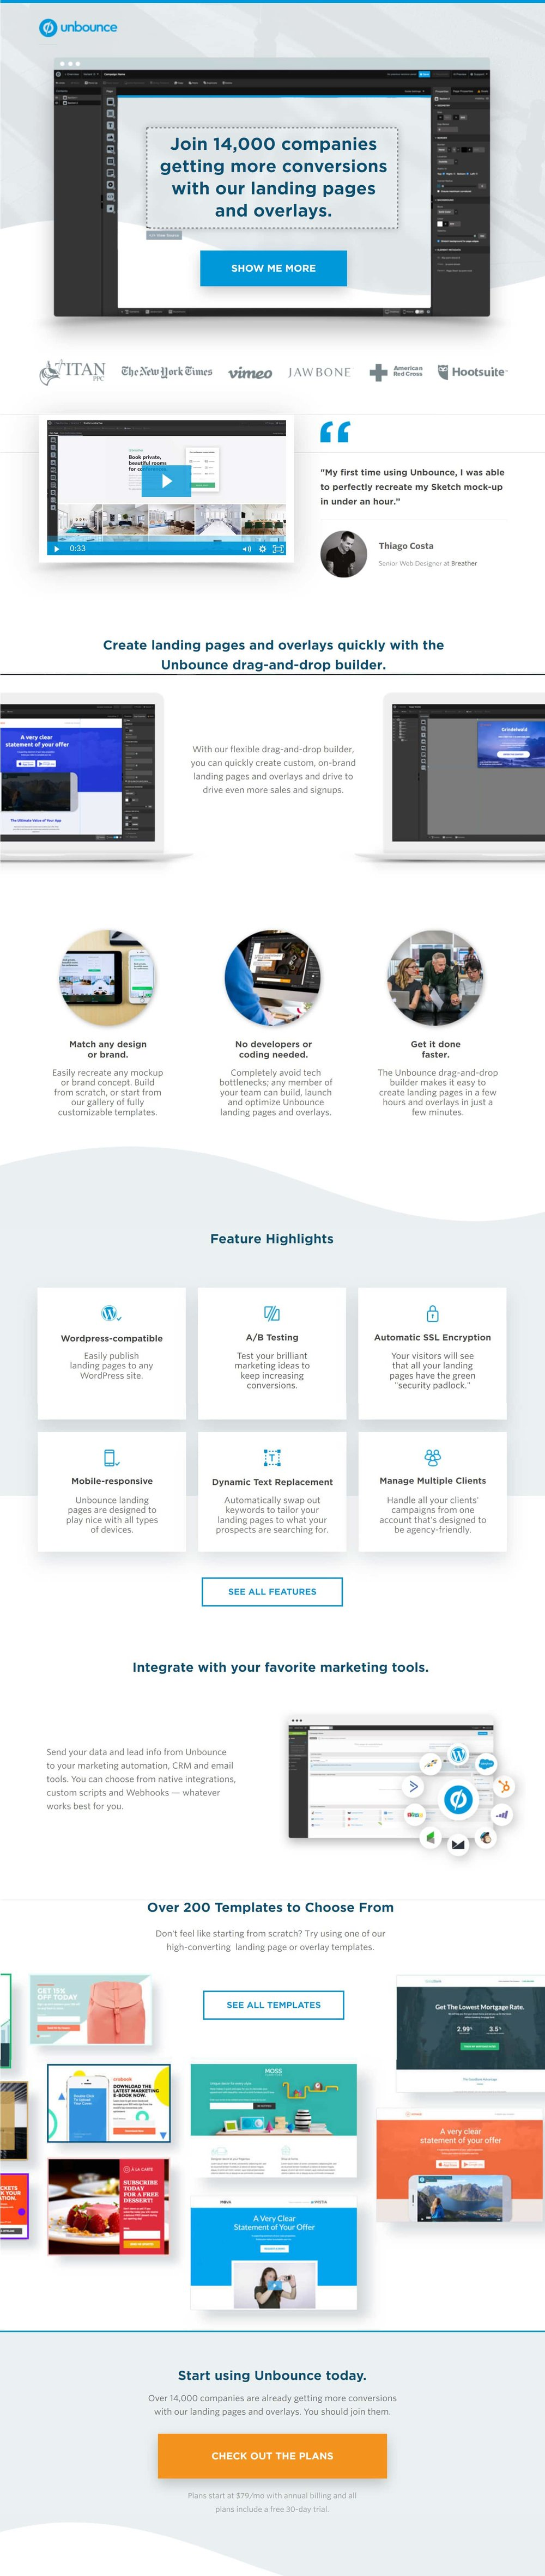 Long form complex Landing Page Example. Source:  Unbounce